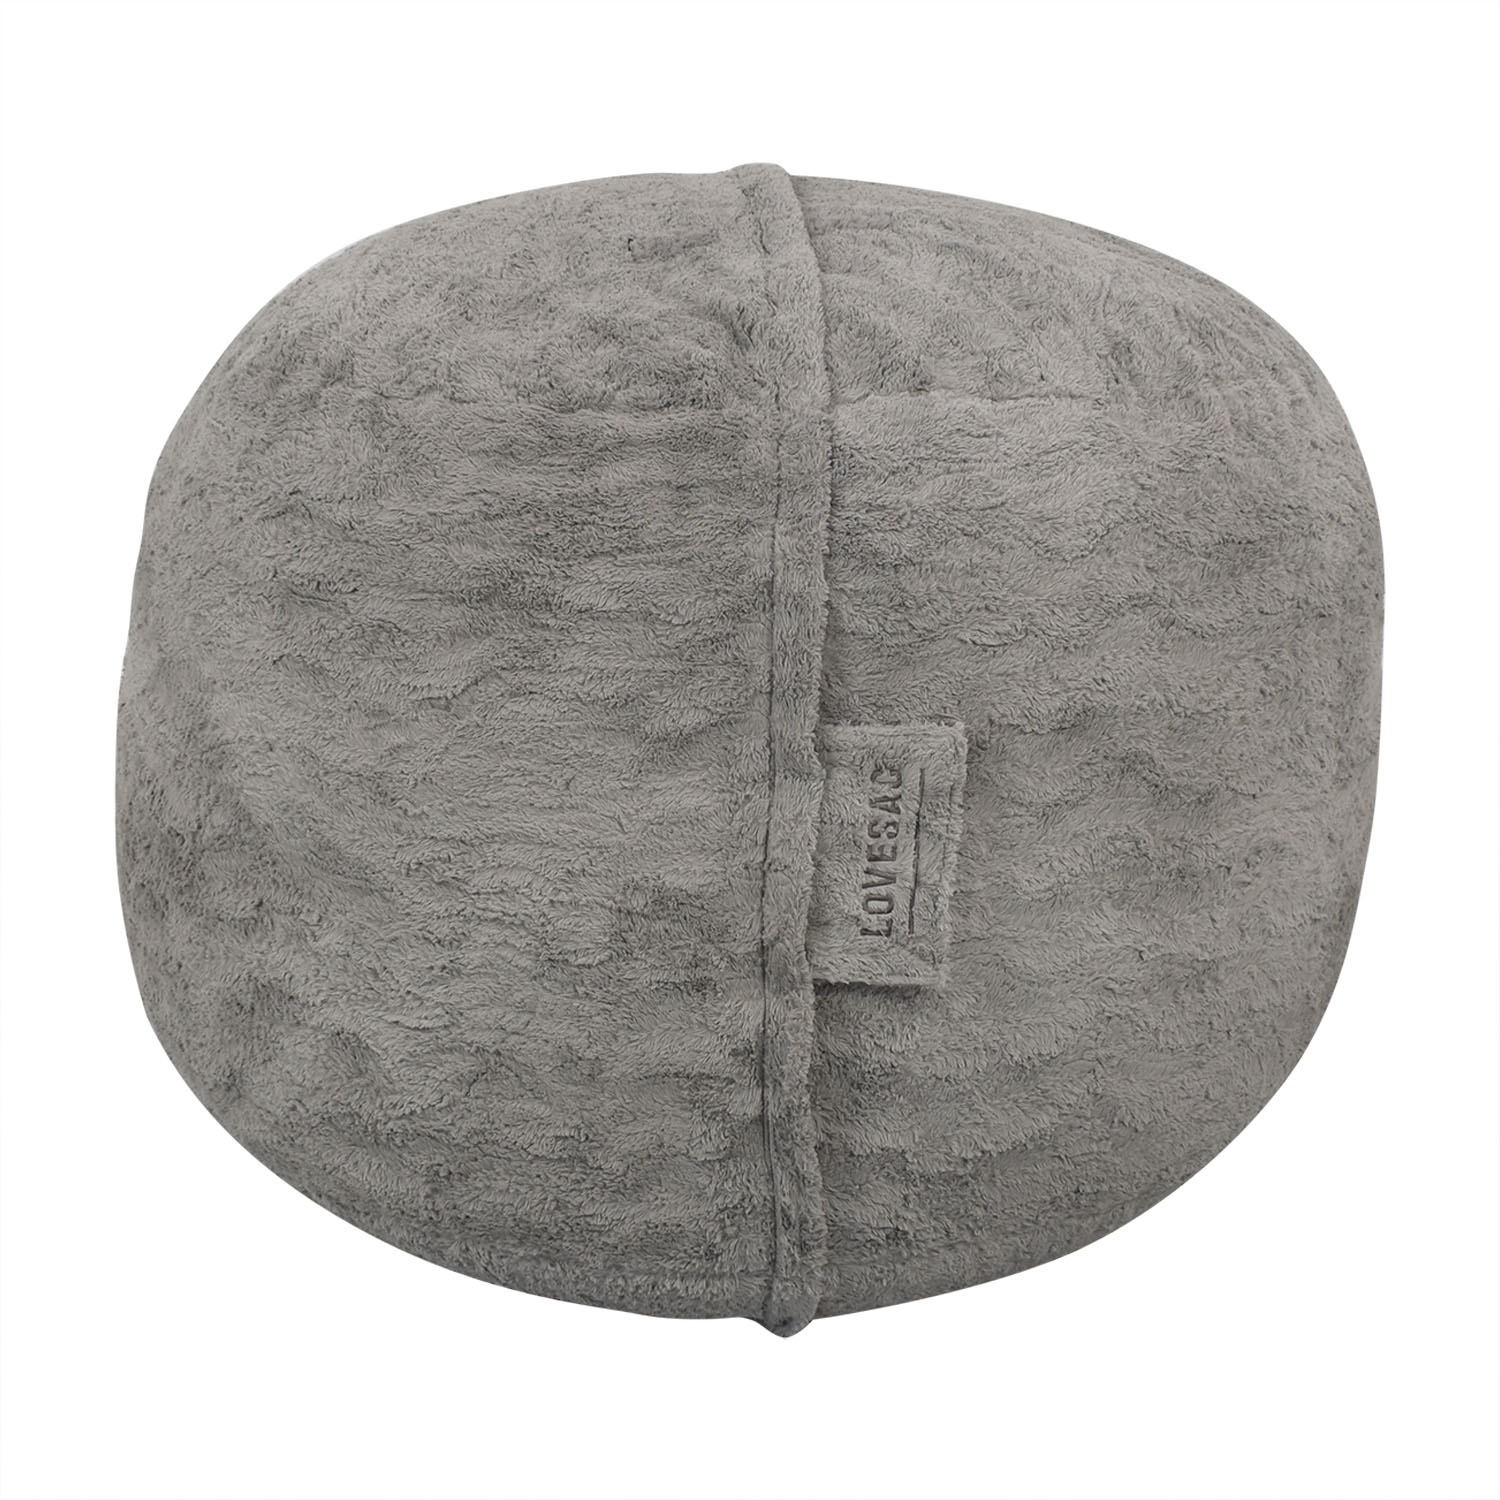 Prime 73 Off Lovesac Lovesac Giant Bean Bag Chair Chairs Pdpeps Interior Chair Design Pdpepsorg